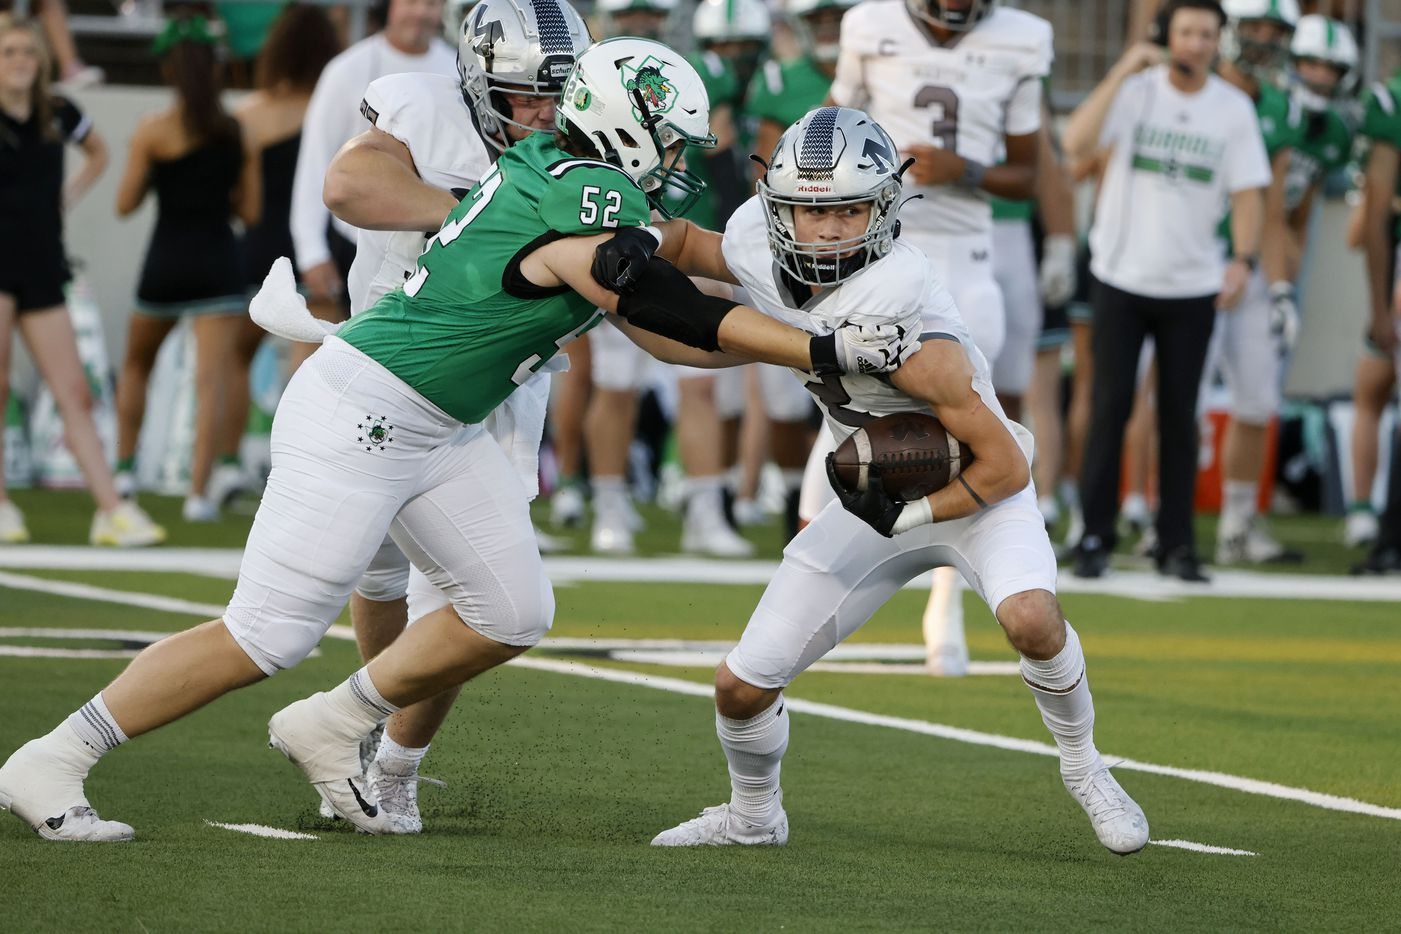 Southlake defender Cade Parks (52) stops Arlington Martin receiver Trey Cochran (2) during a high school football game in Southlake, Texas on Friday, Sept. 17, 2021. (Michael Ainsworth/Special Contributor)